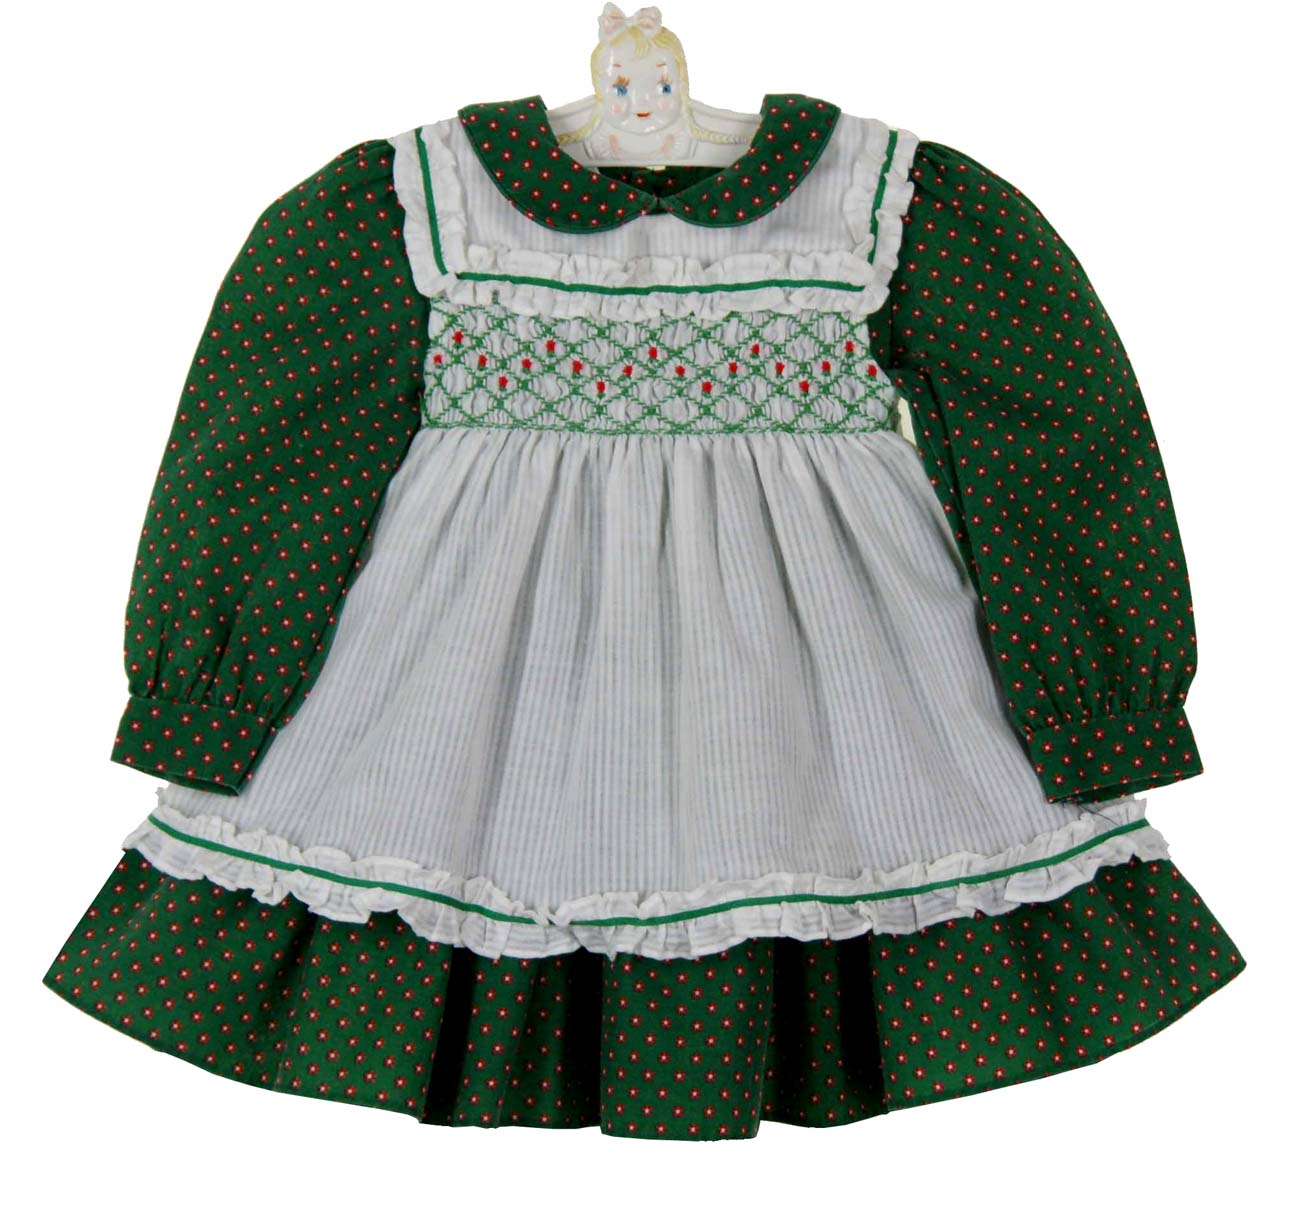 0d47a512c66d Polly Flinders green flowered smocked dress with white smocked ...